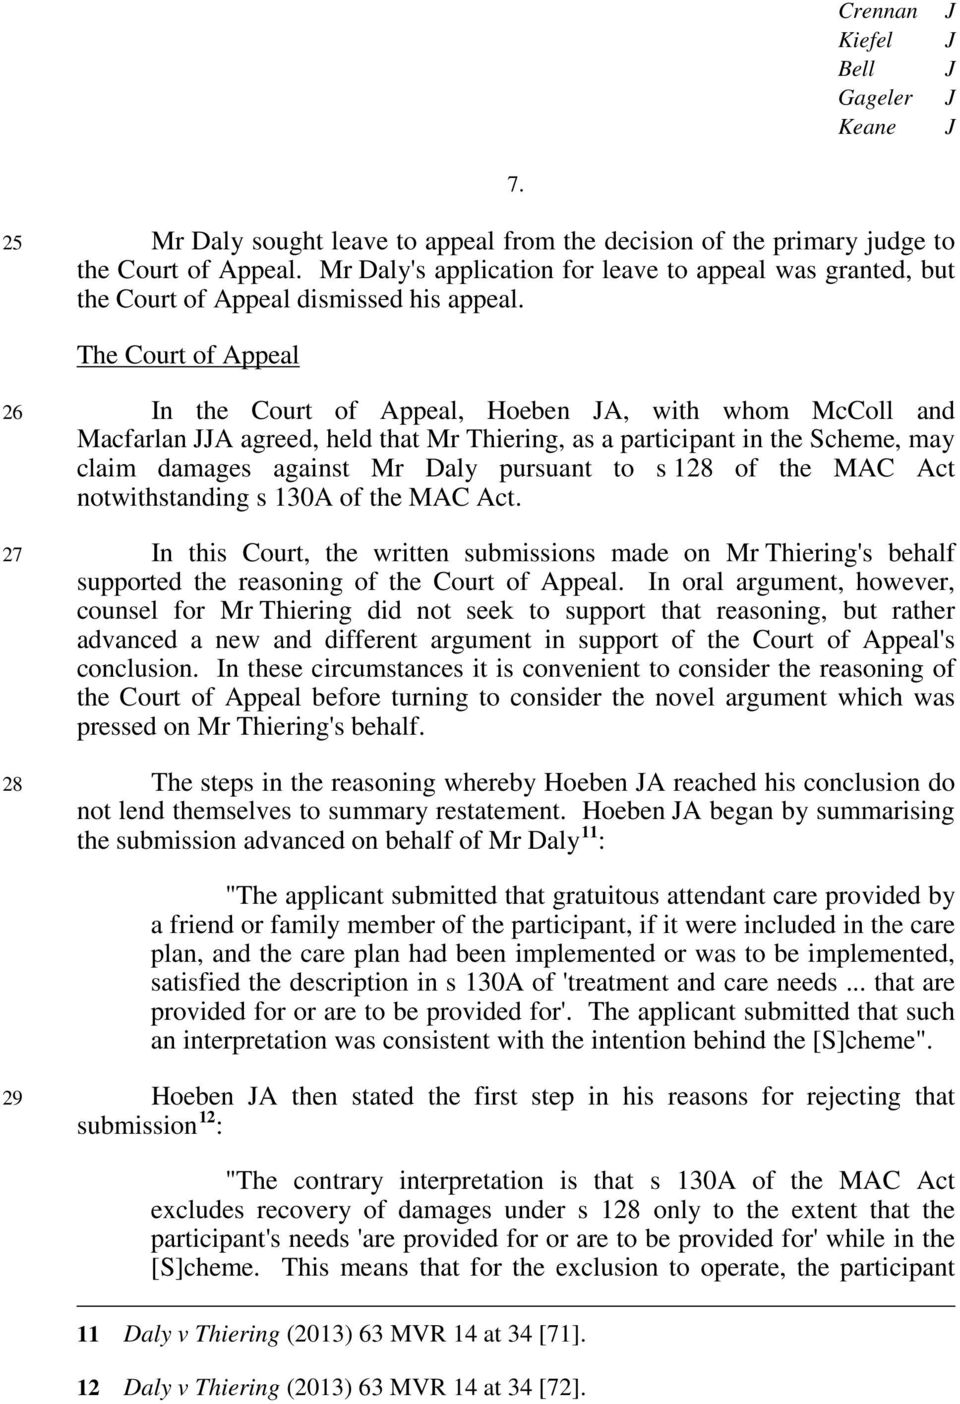 The Court of Appeal 26 In the Court of Appeal, Hoeben A, with whom McColl and Macfarlan A agreed, held that Mr Thiering, as a participant in the Scheme, may claim damages against Mr Daly pursuant to